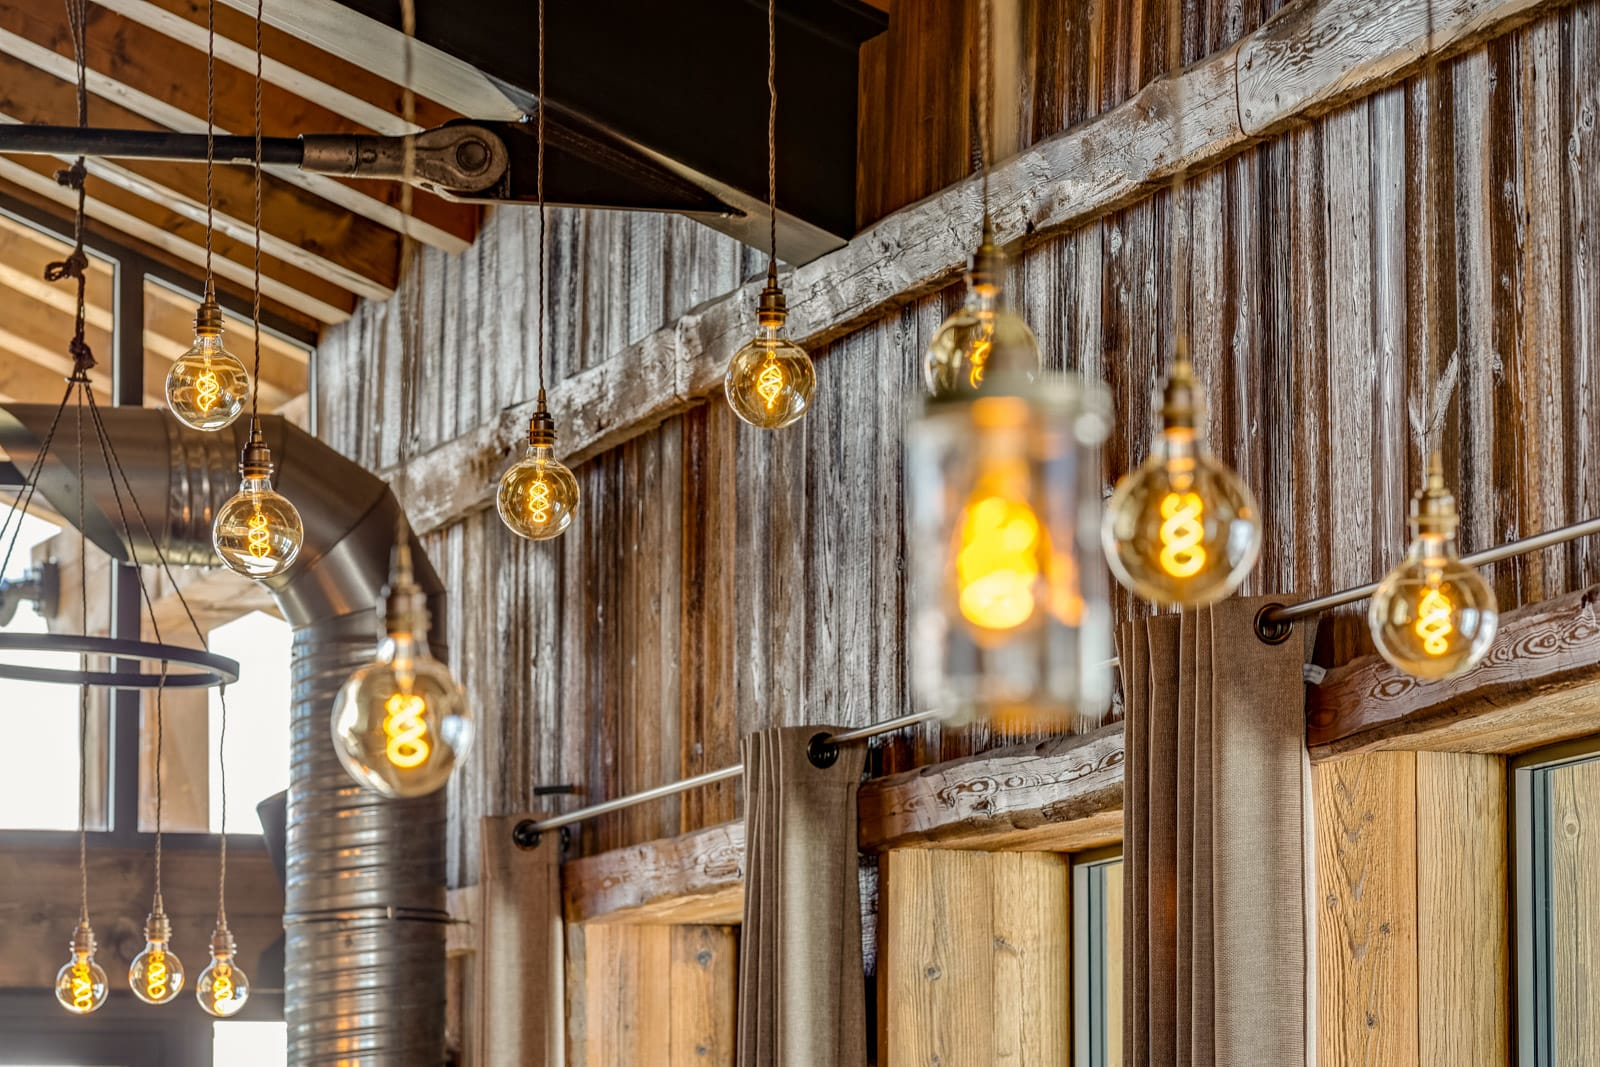 Lome vintage pendants with exposed Edison bulbs